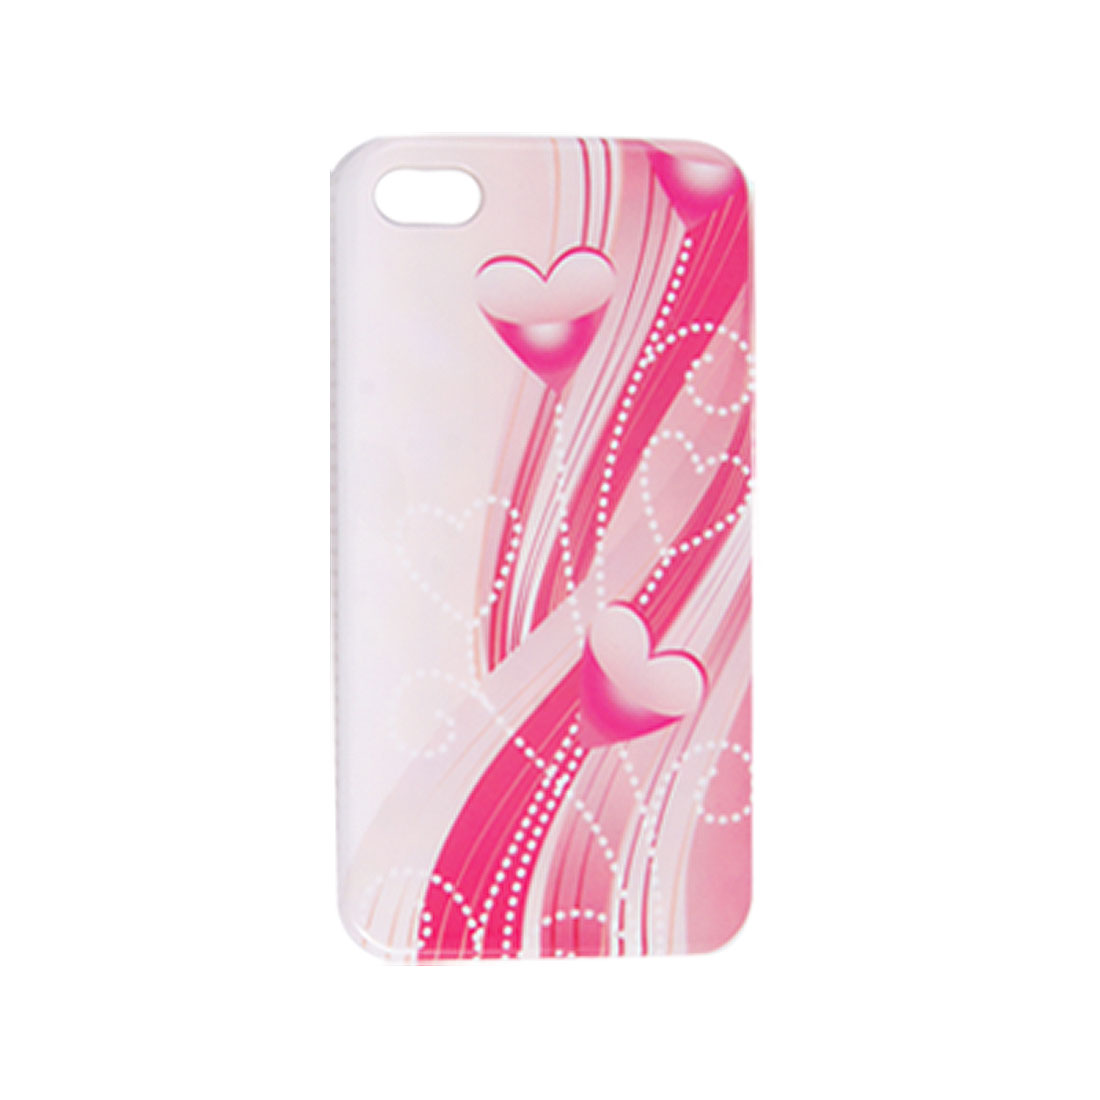 IMD Heart Striped Pattern Plastic Back Case White Pink for iPhone 4 4G 4S